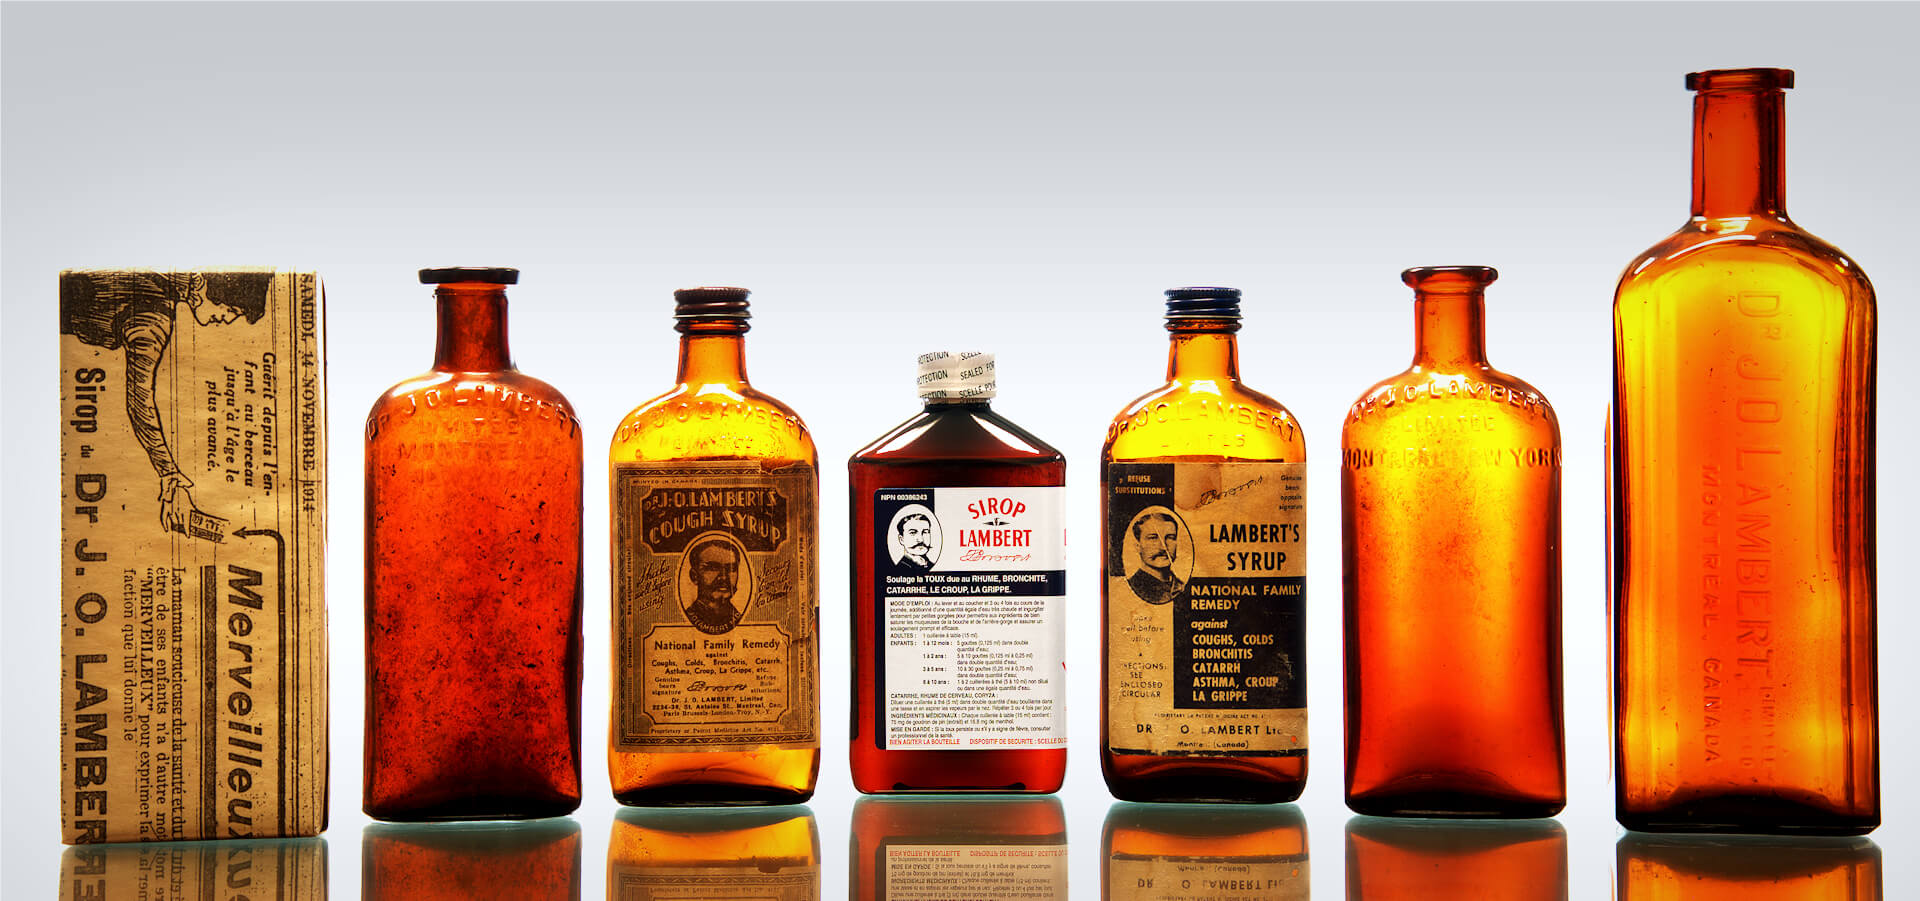 History of Lambert syrup, your natural cough syrup since more than 120 years !